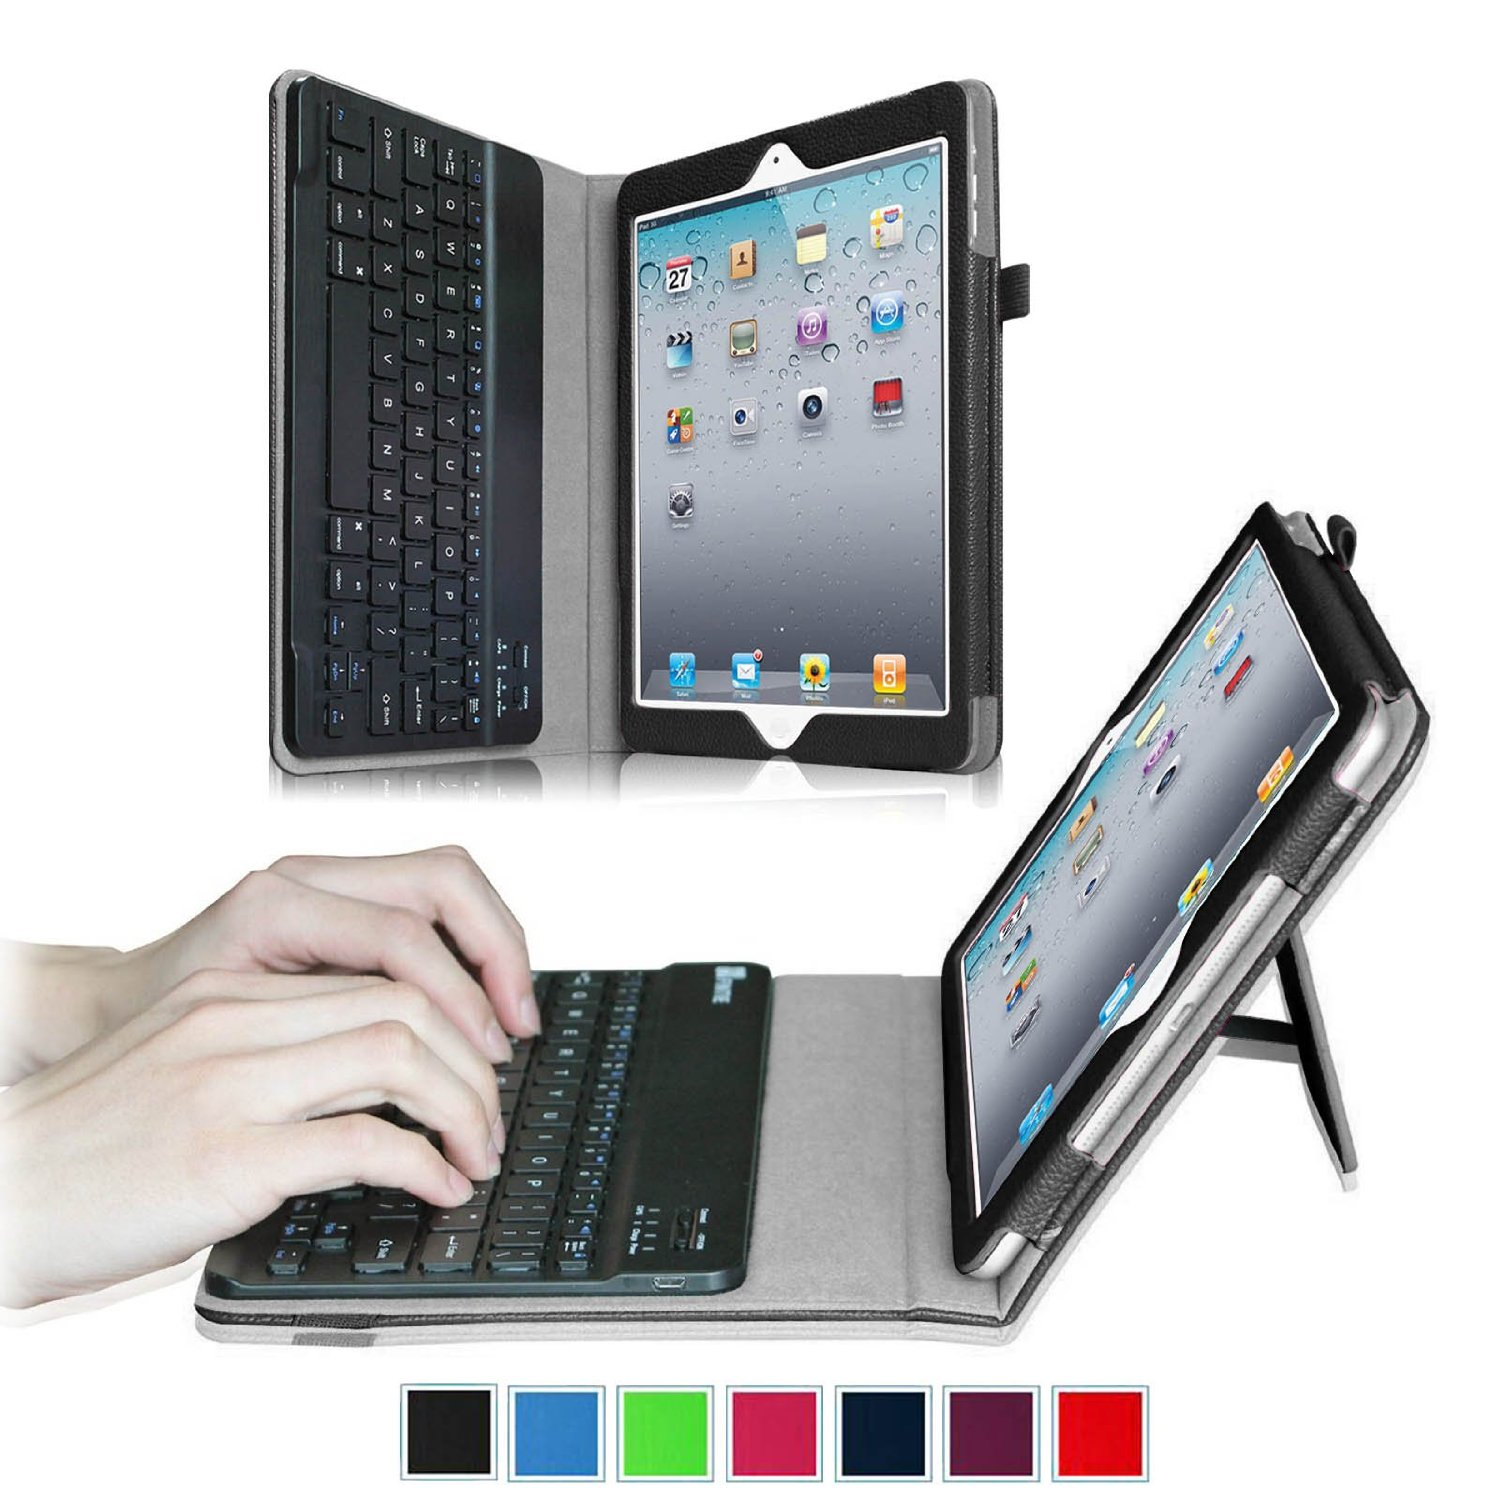 For Apple iPad 4, iPad 3 & iPad 2 Keyboard Case - Fintie Folio Case With Removable Bluetooth Keyboard, Black